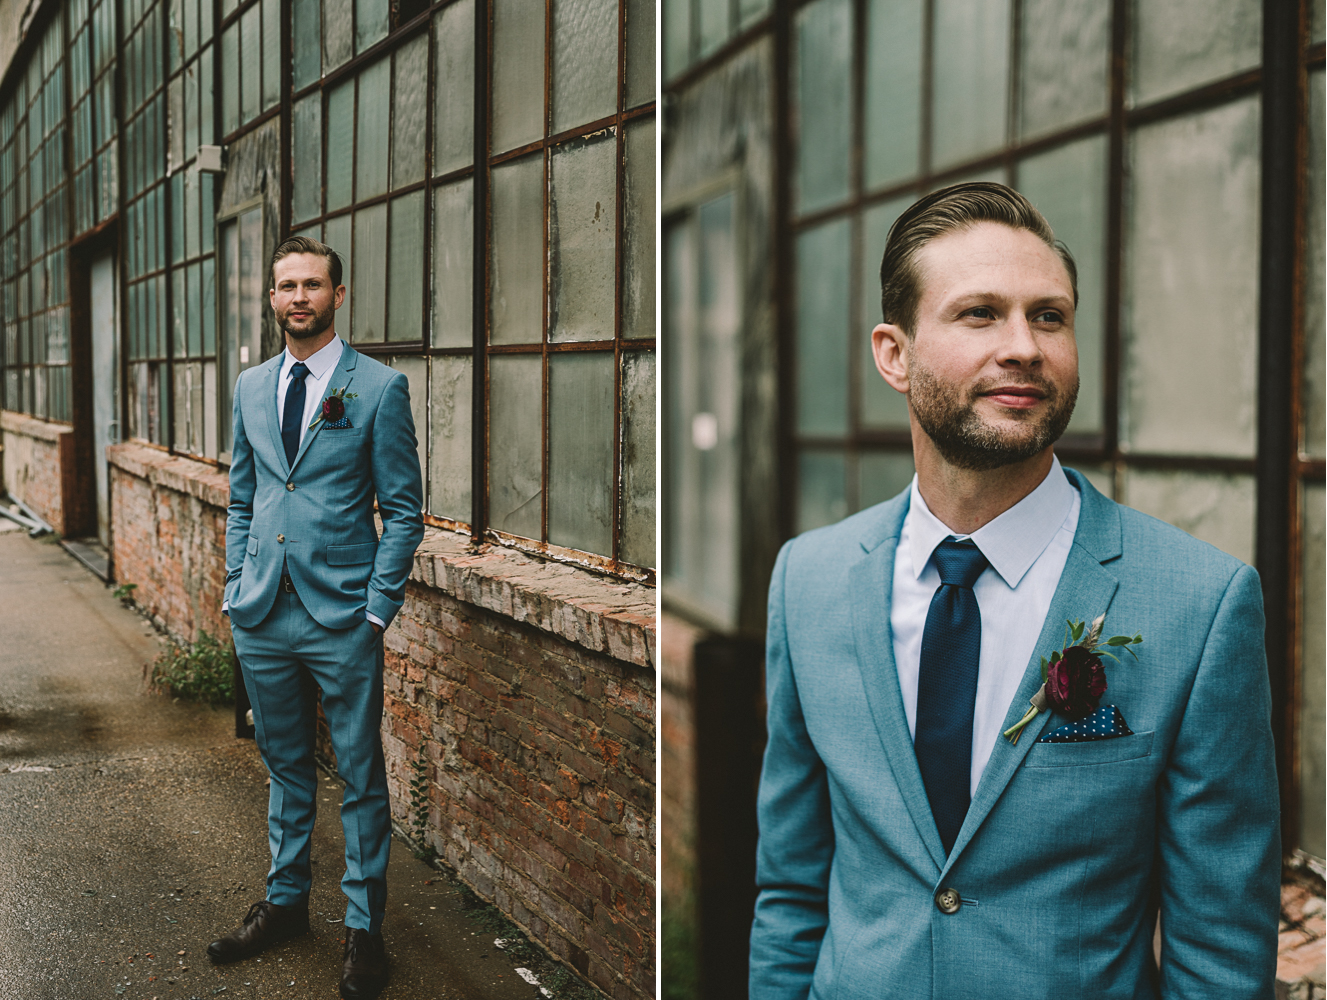 clipton mill baltimore industrial groom portrait blue suite wedding photographer .jpg